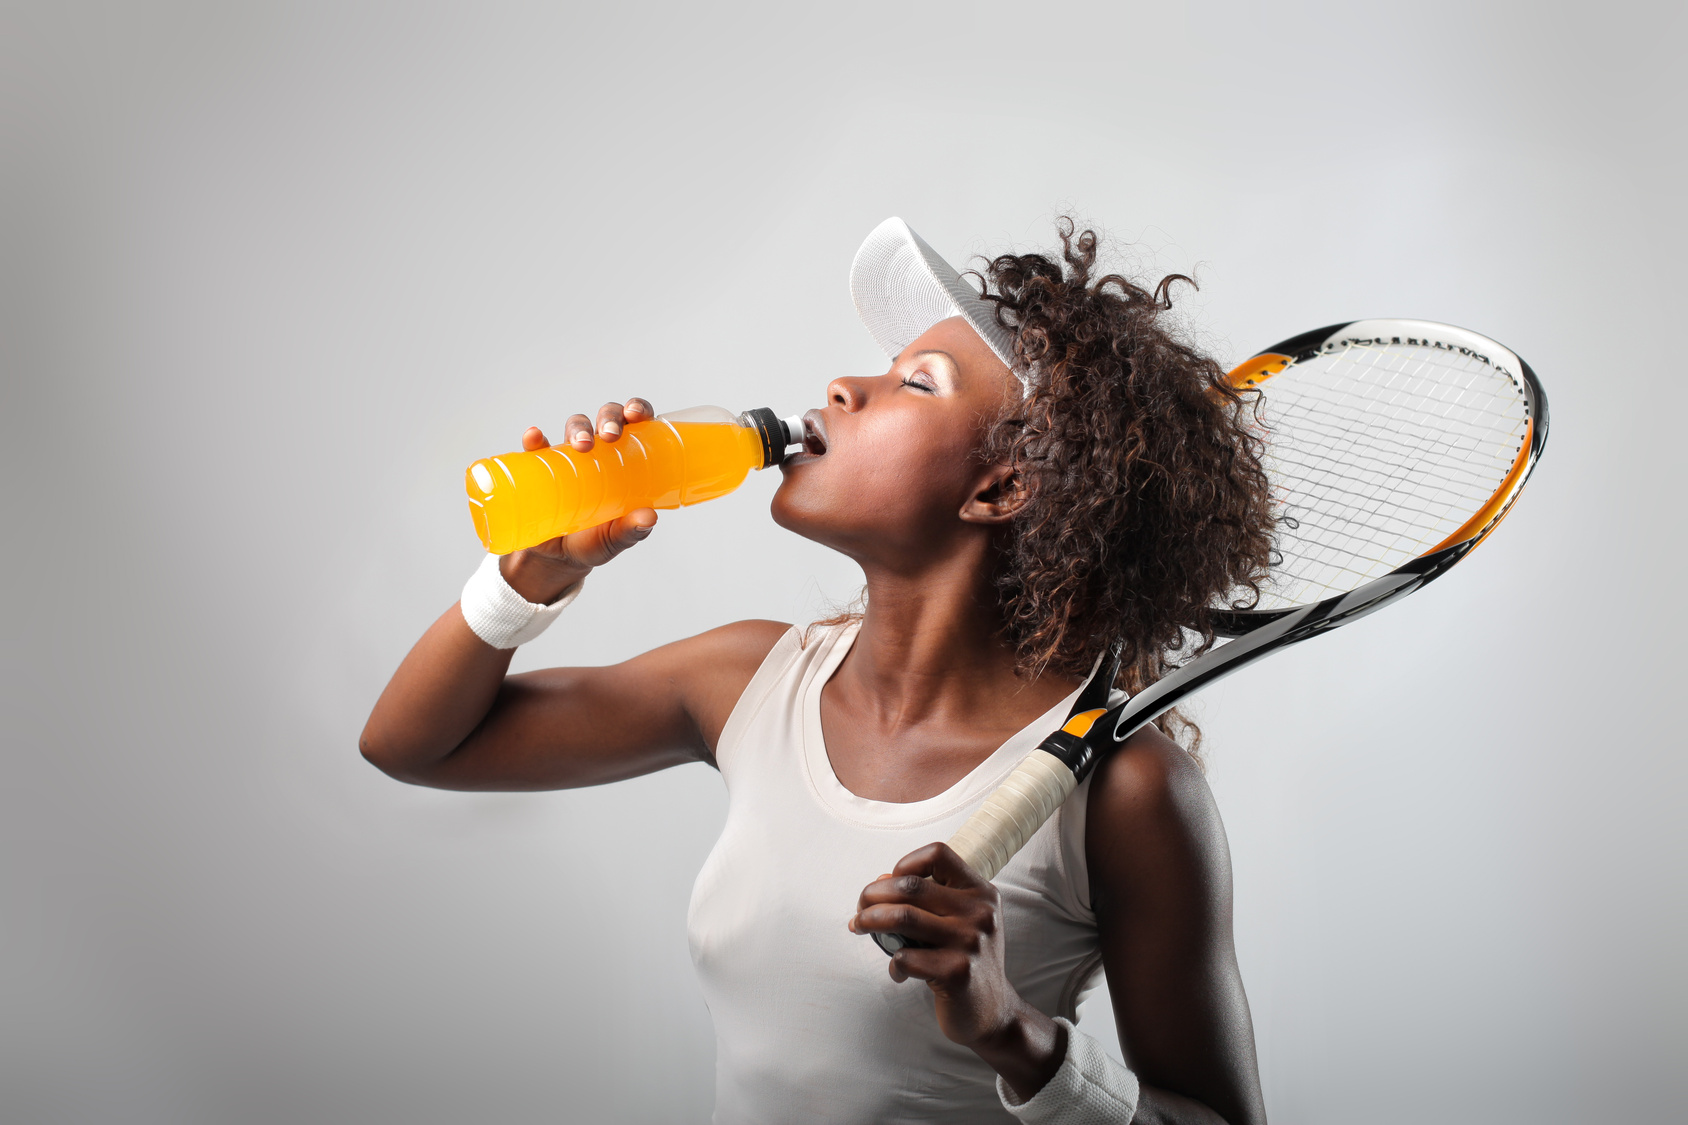 Electrolyte Drinks: Health vs. Hype